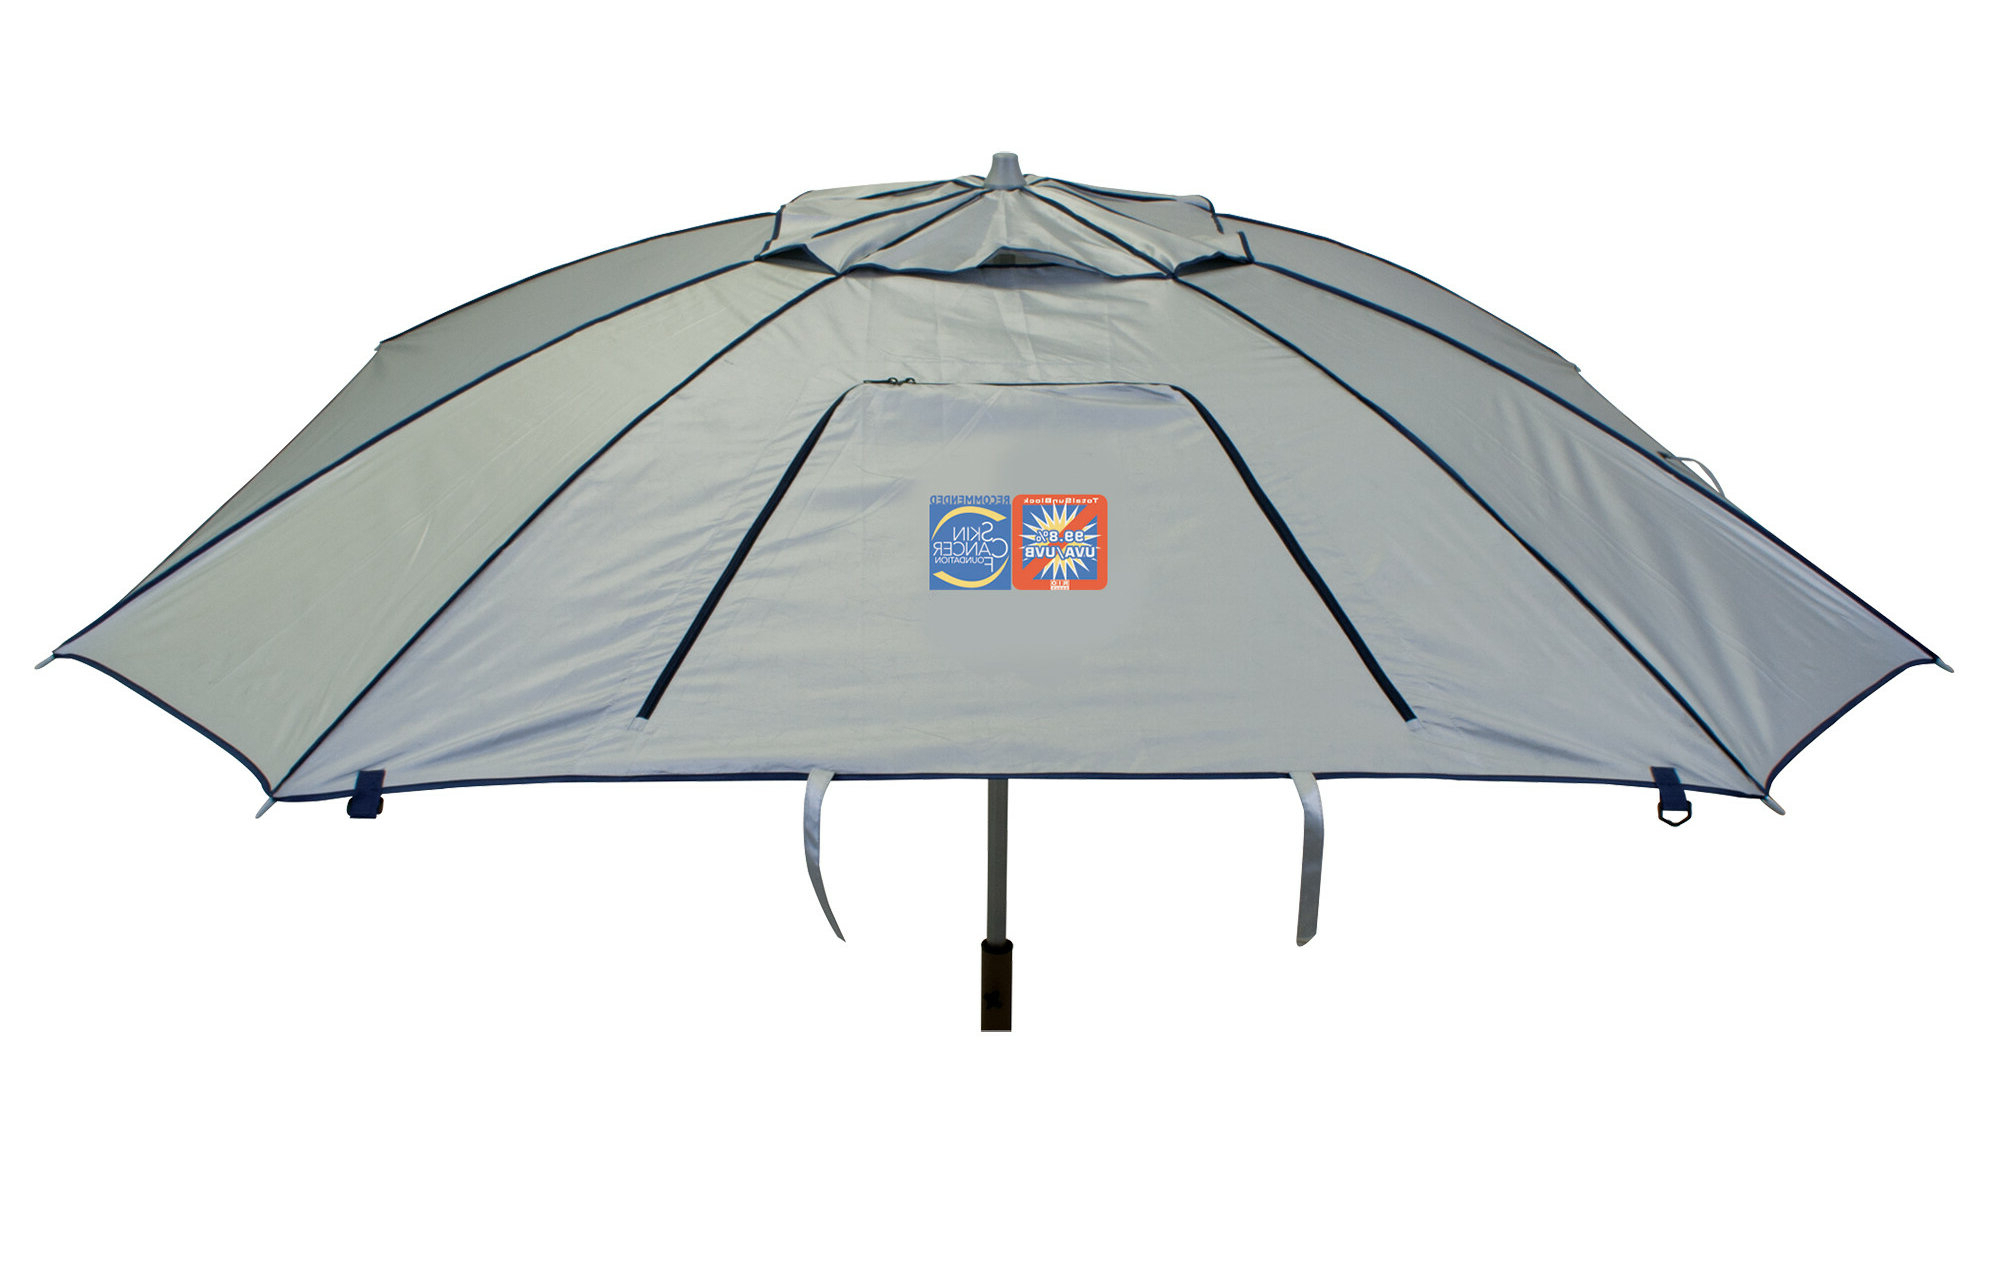 Schroeder Heavy Duty Beach Umbrellas Regarding Most Popular Total Sun Block Extreme Shade 8 Ft (View 17 of 20)